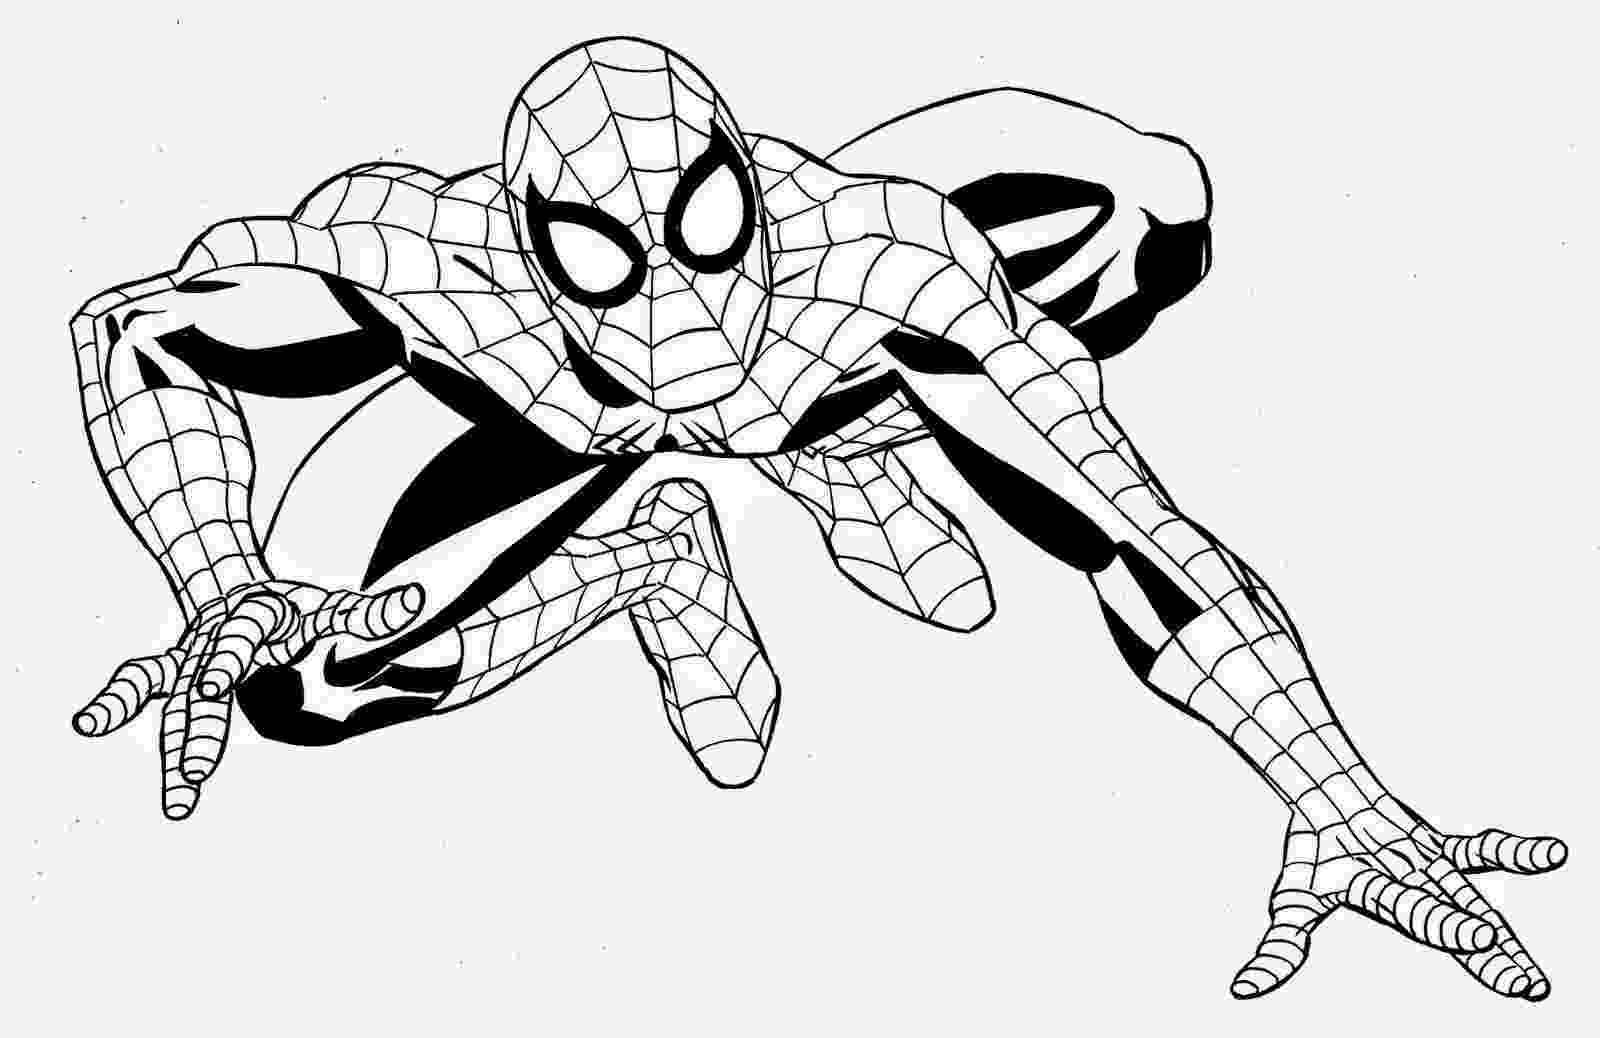 superhero coloring page superhero coloring pages coloring pages free premium superhero coloring page 1 2